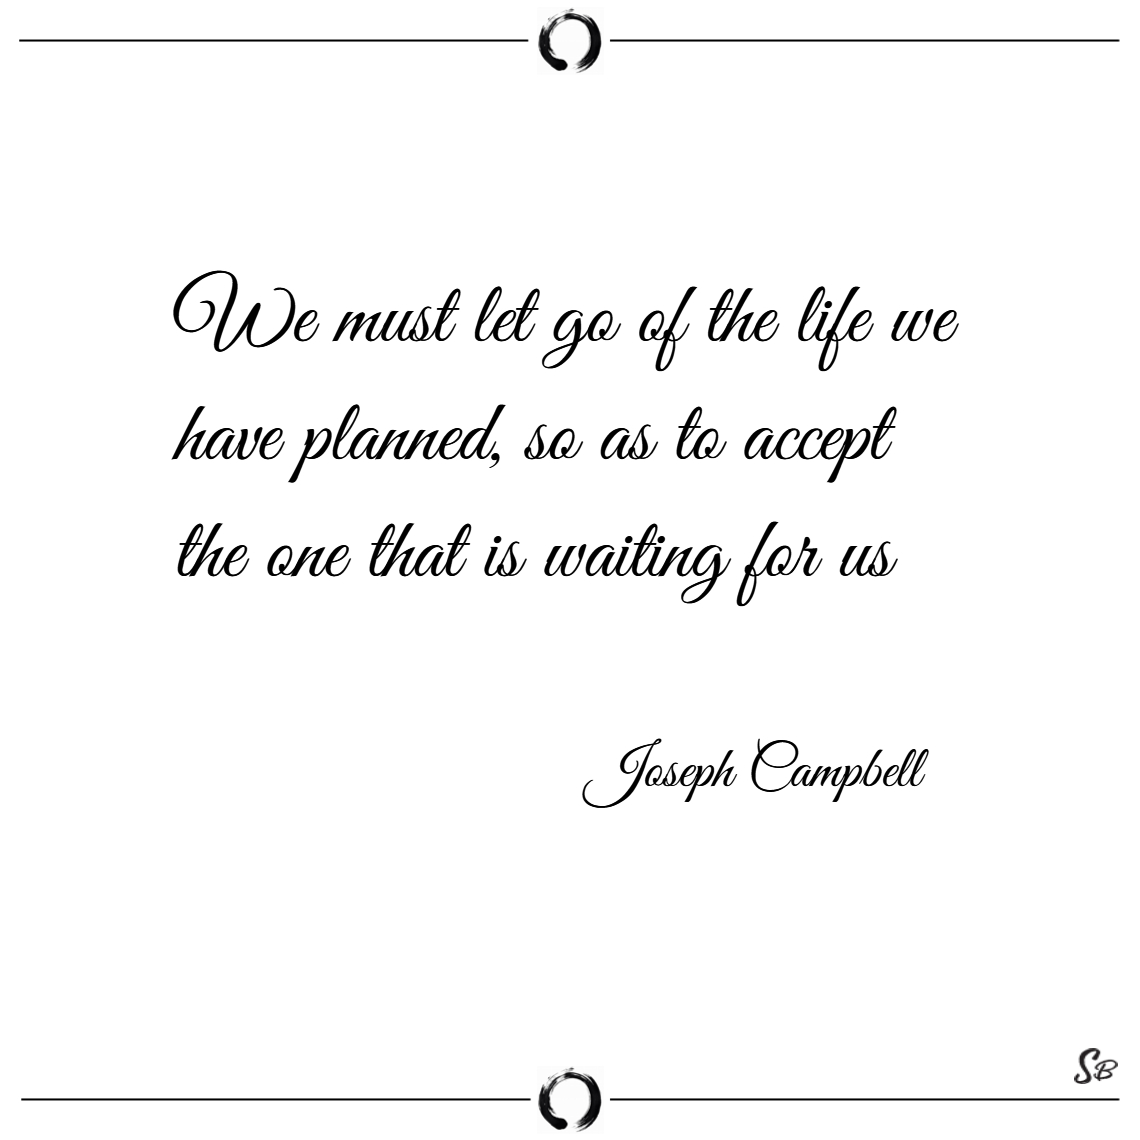 We must let go of the life we have planned, so as